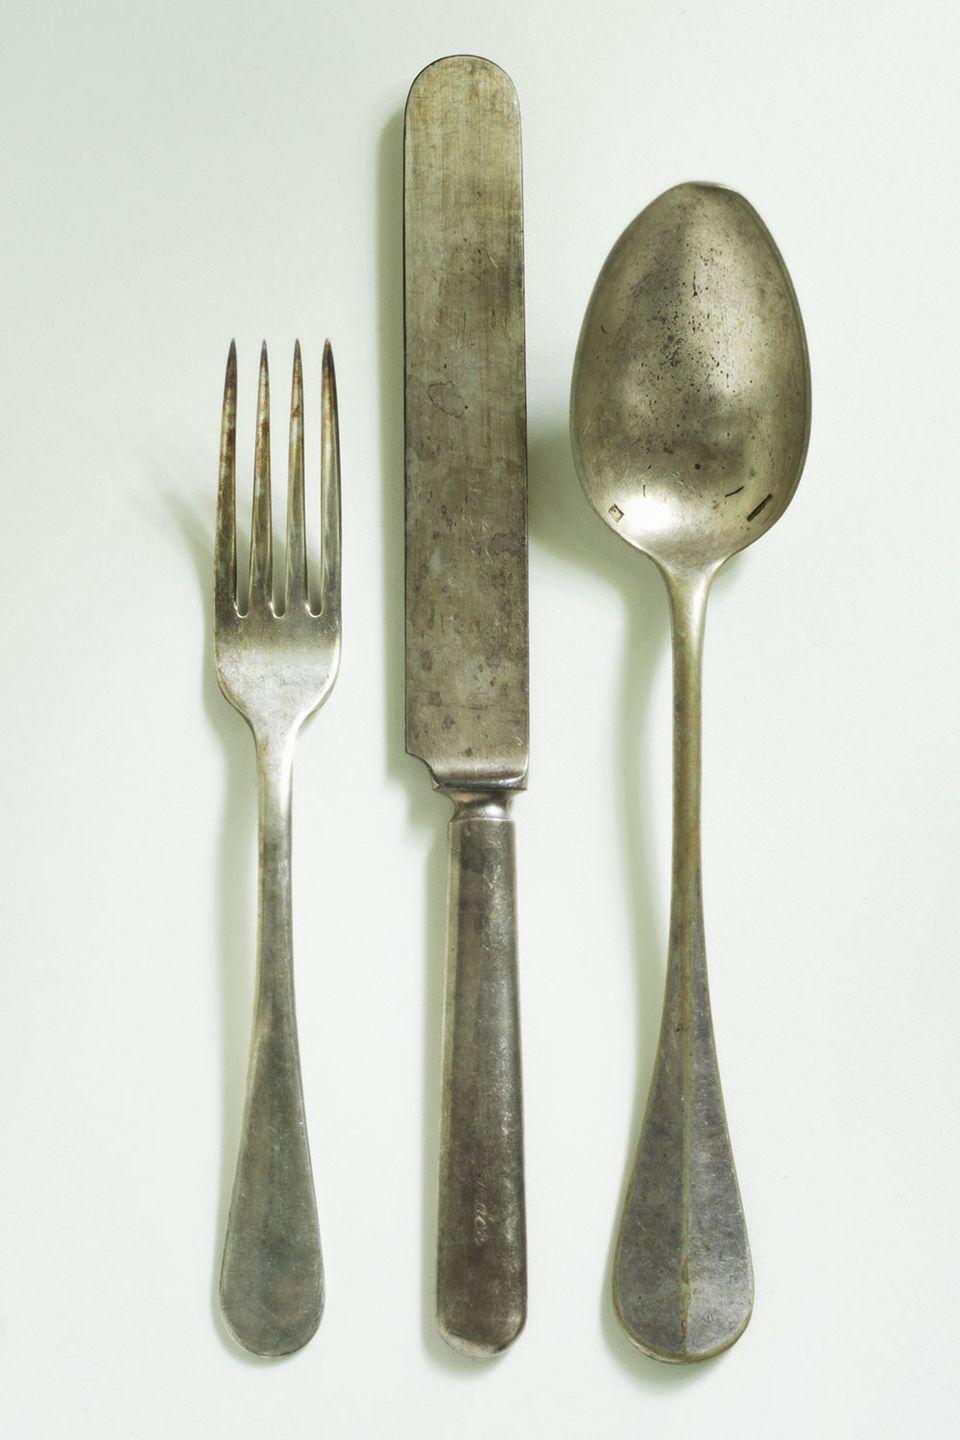 <p>Time to bust out your grandmother's old dinnerware. Sets of sterling silver flatware can be worth anywhere from hundreds to thousands of dollars. If you have a complete set from a big brand like Tiffany, you could be in for a real payday.</p><p><strong>What it's worth: </strong>Up to $1,100 per piece<br></p>